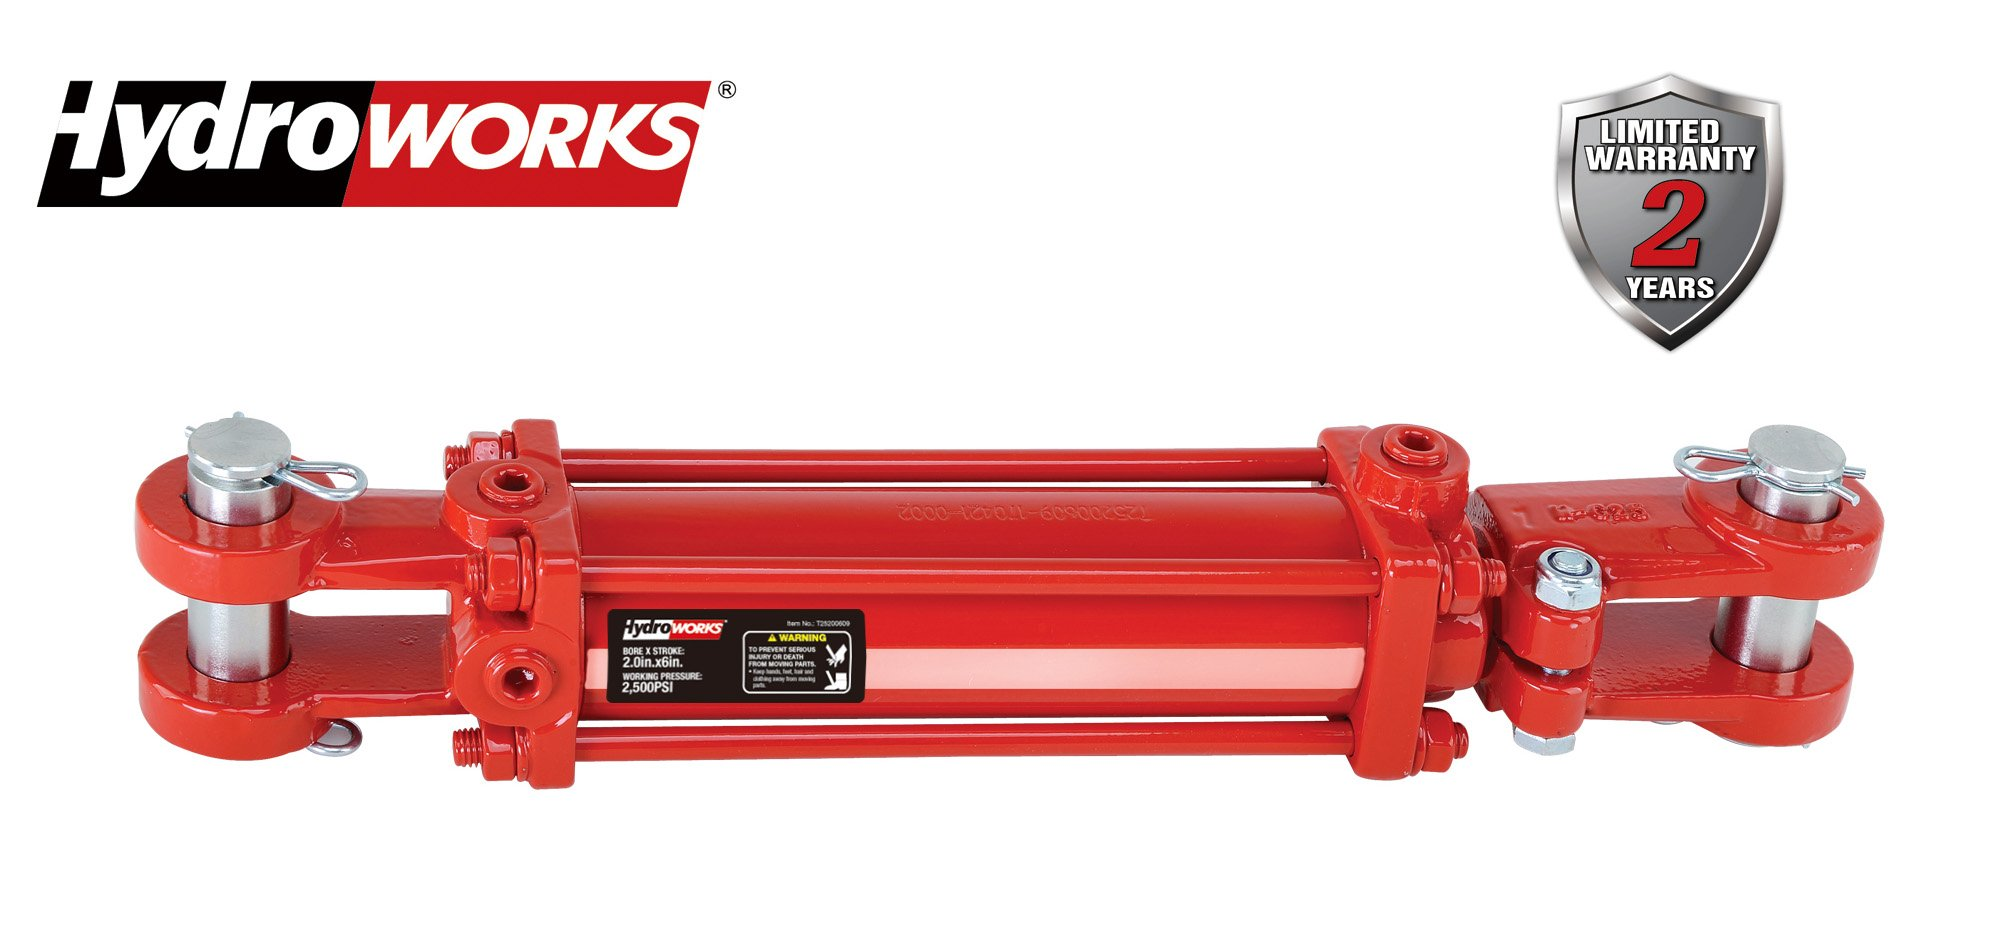 HYDROWORKS Double Acting Tie Rod Hydraulic Cylinder, 2500 PSI (3'' Bore/ 12'' Stroke)